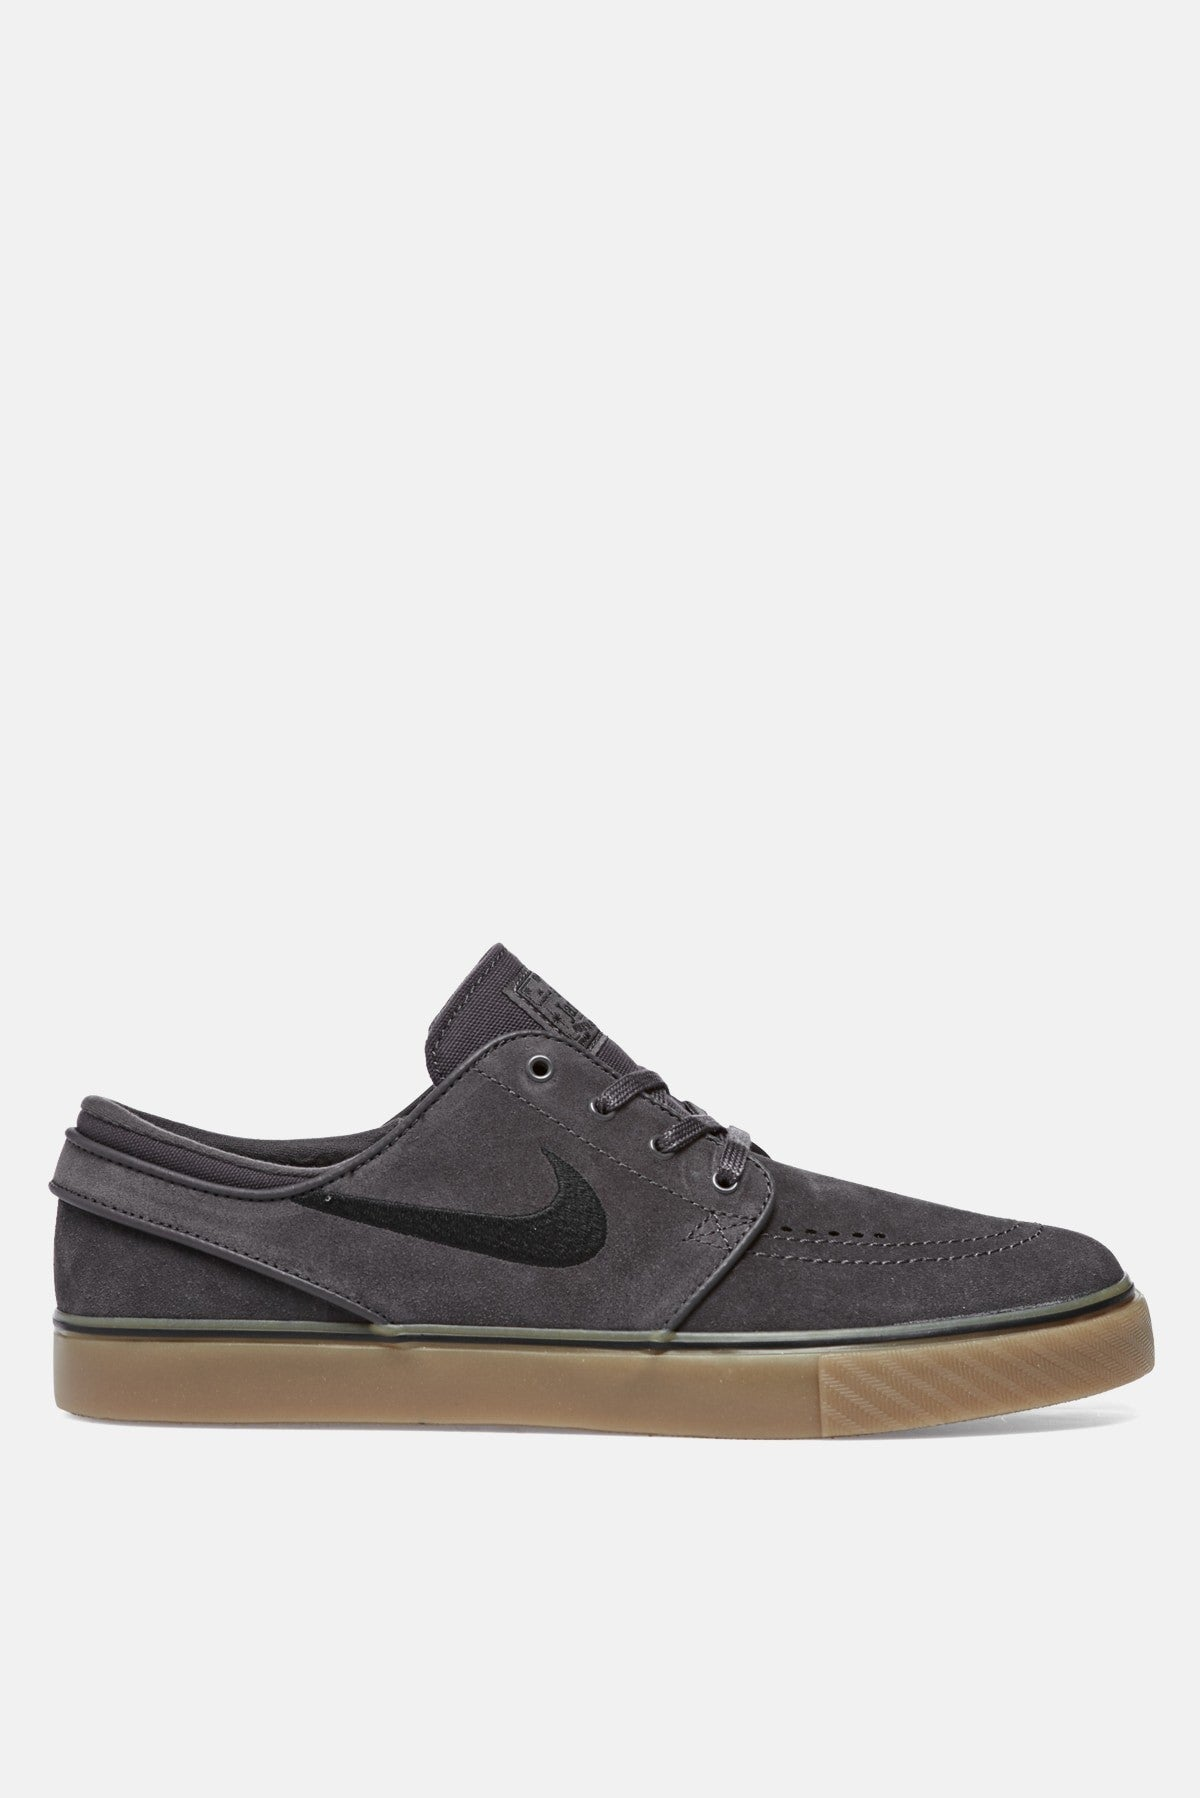 a245cb4179de Nike SB Zoom Stefan Janoski Suede Boty available from Priory